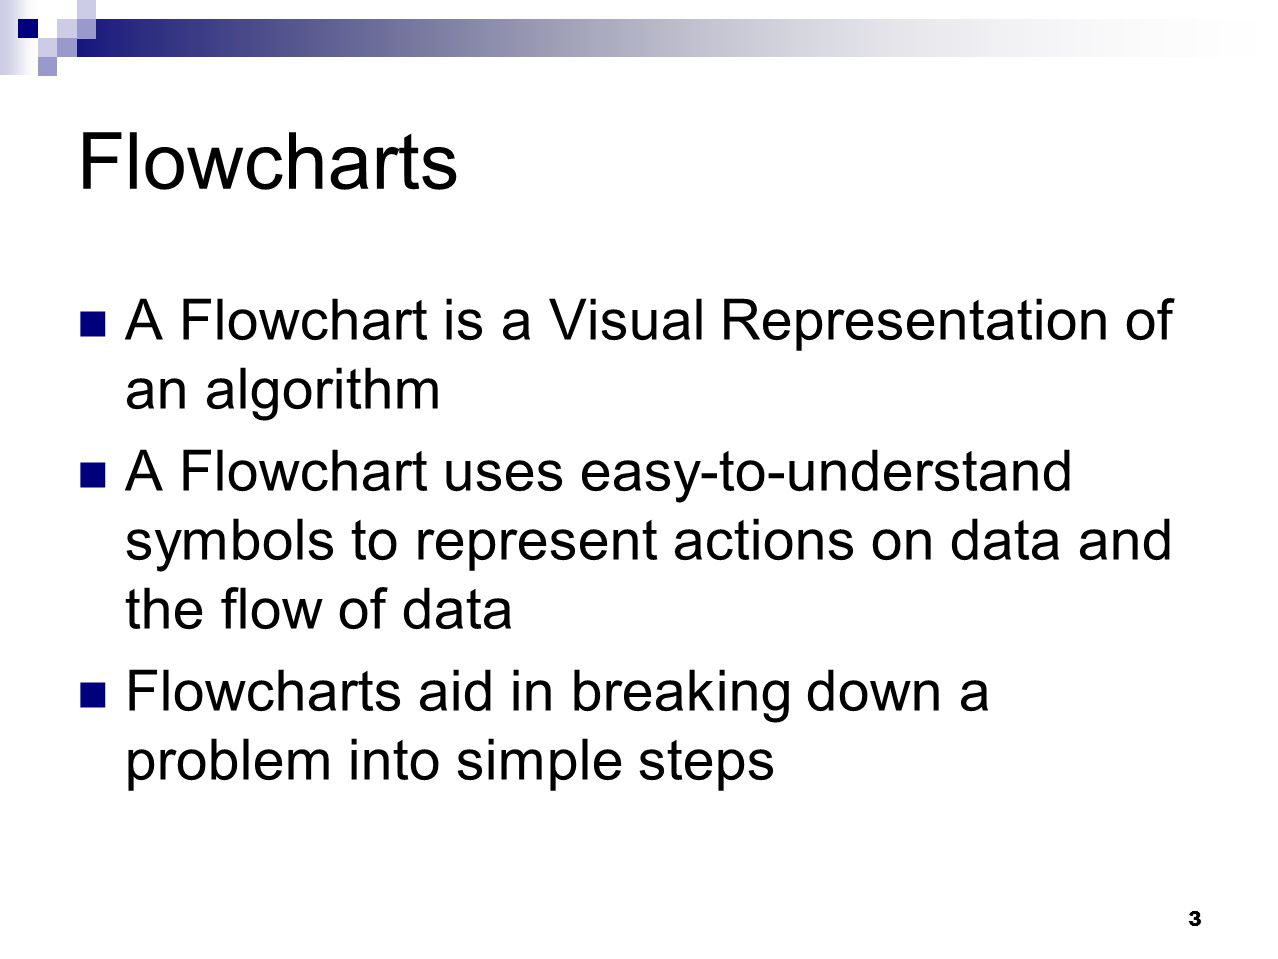 Flowcharts A Flowchart is a Visual Representation of an algorithm